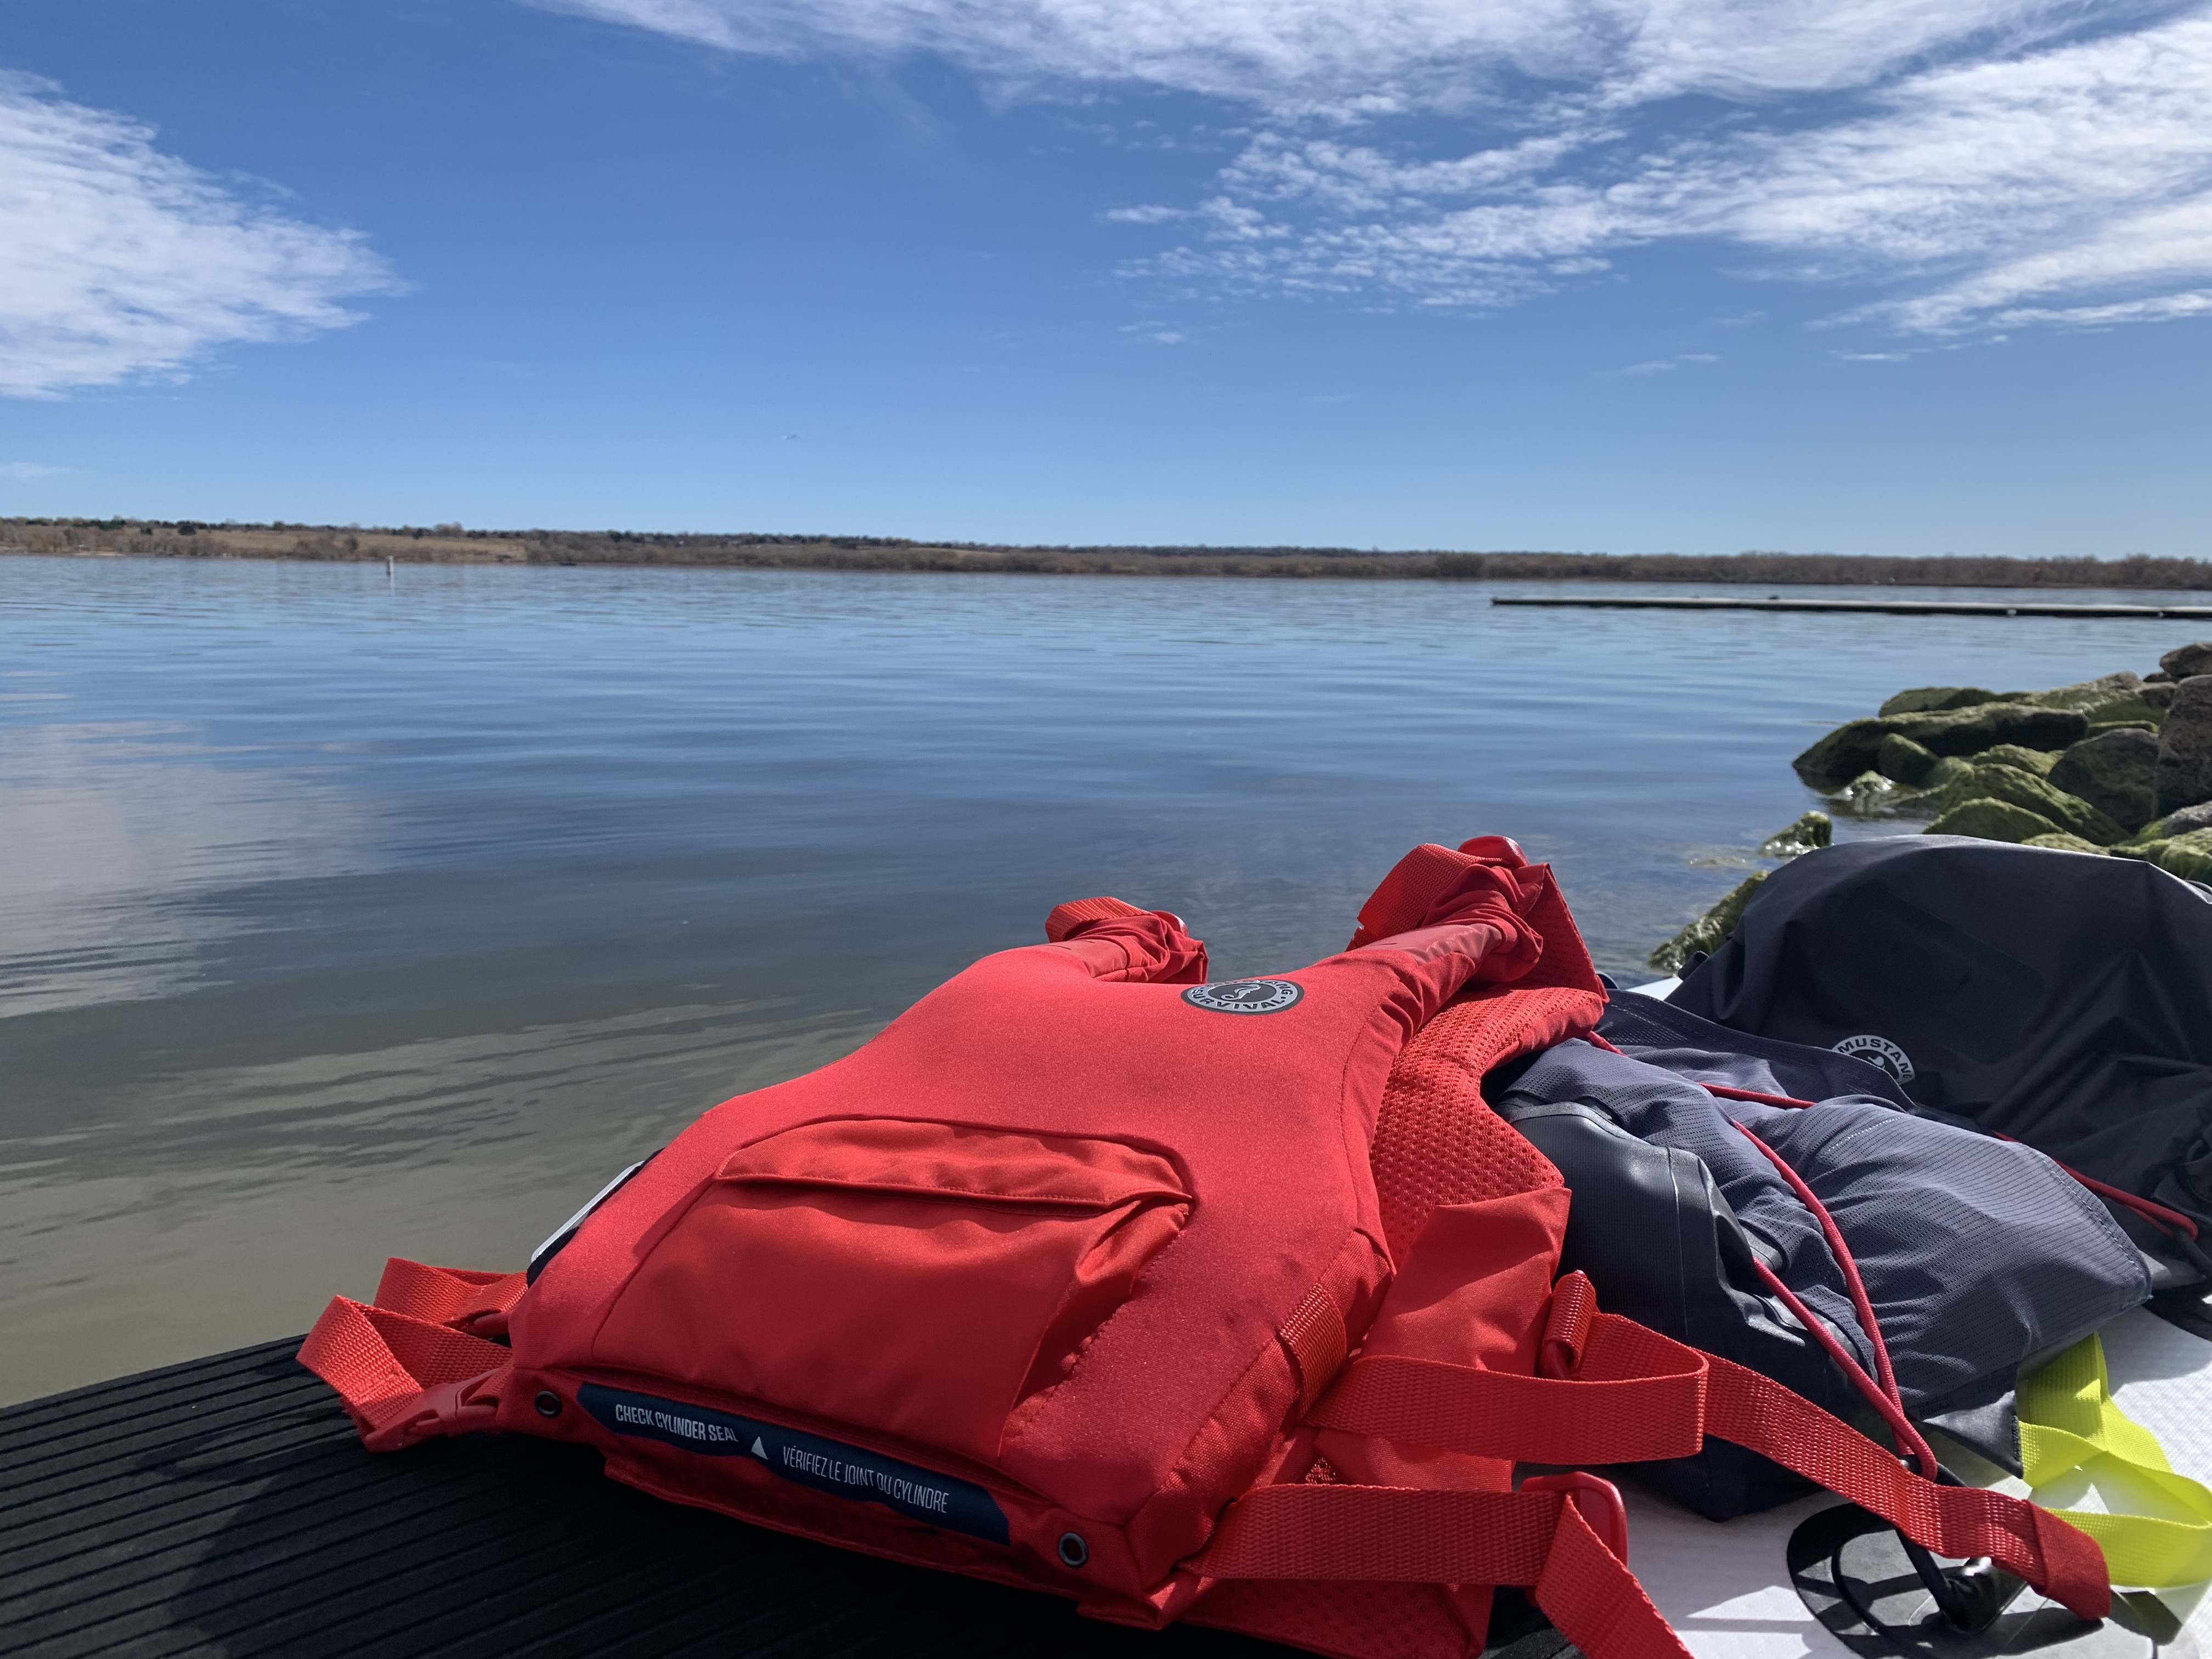 Mustang Survival Khimera PFD resting next to dry bag on deck of paddleboard near a still lake